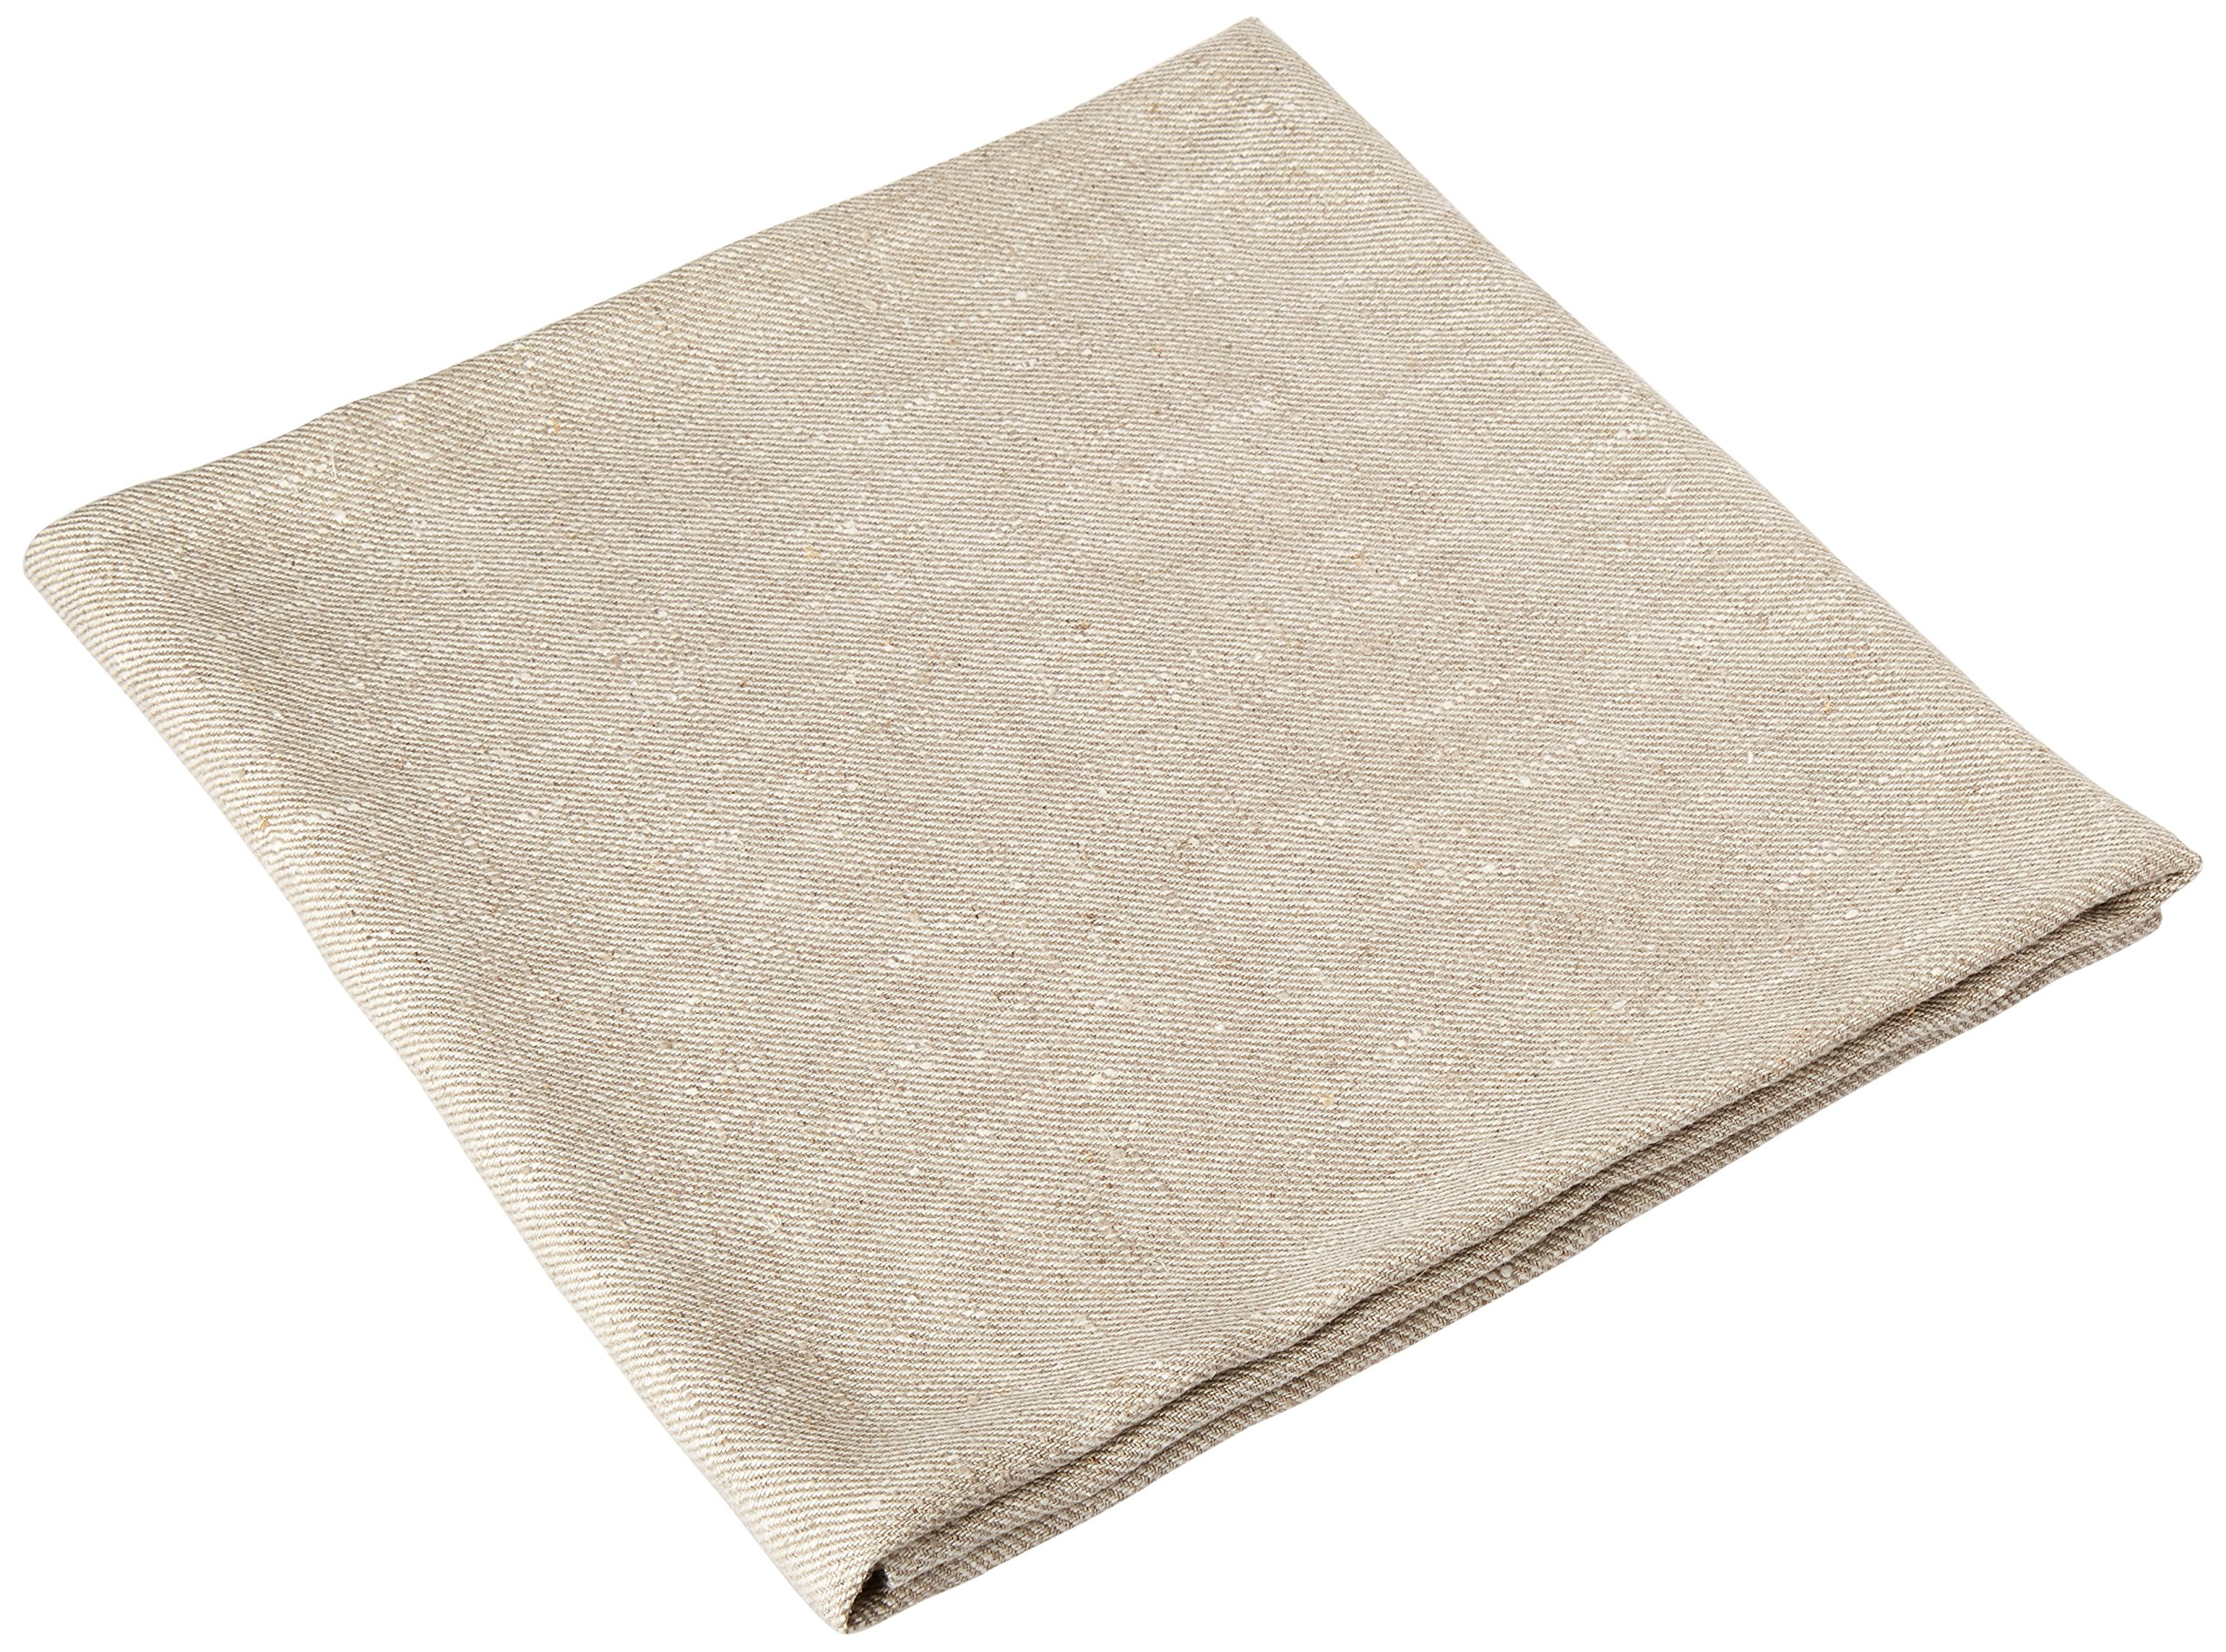 "LinenMe Twill Bath Towel, 39"" x 59"", Cream - A little vintage for every day; not only these huckaback towels can be perfect addition to any well-appointed bath, but linen has also the ability to absorb moisture better than cotton and will dry more quickly. With a sensual touch and soft absorbency this will last for years Size: 39X 59, color: beige, machine washable Produced in Europe from 100Percent linen - bathroom-linens, bathroom, bath-towels - 91pgUKDHjzL -"